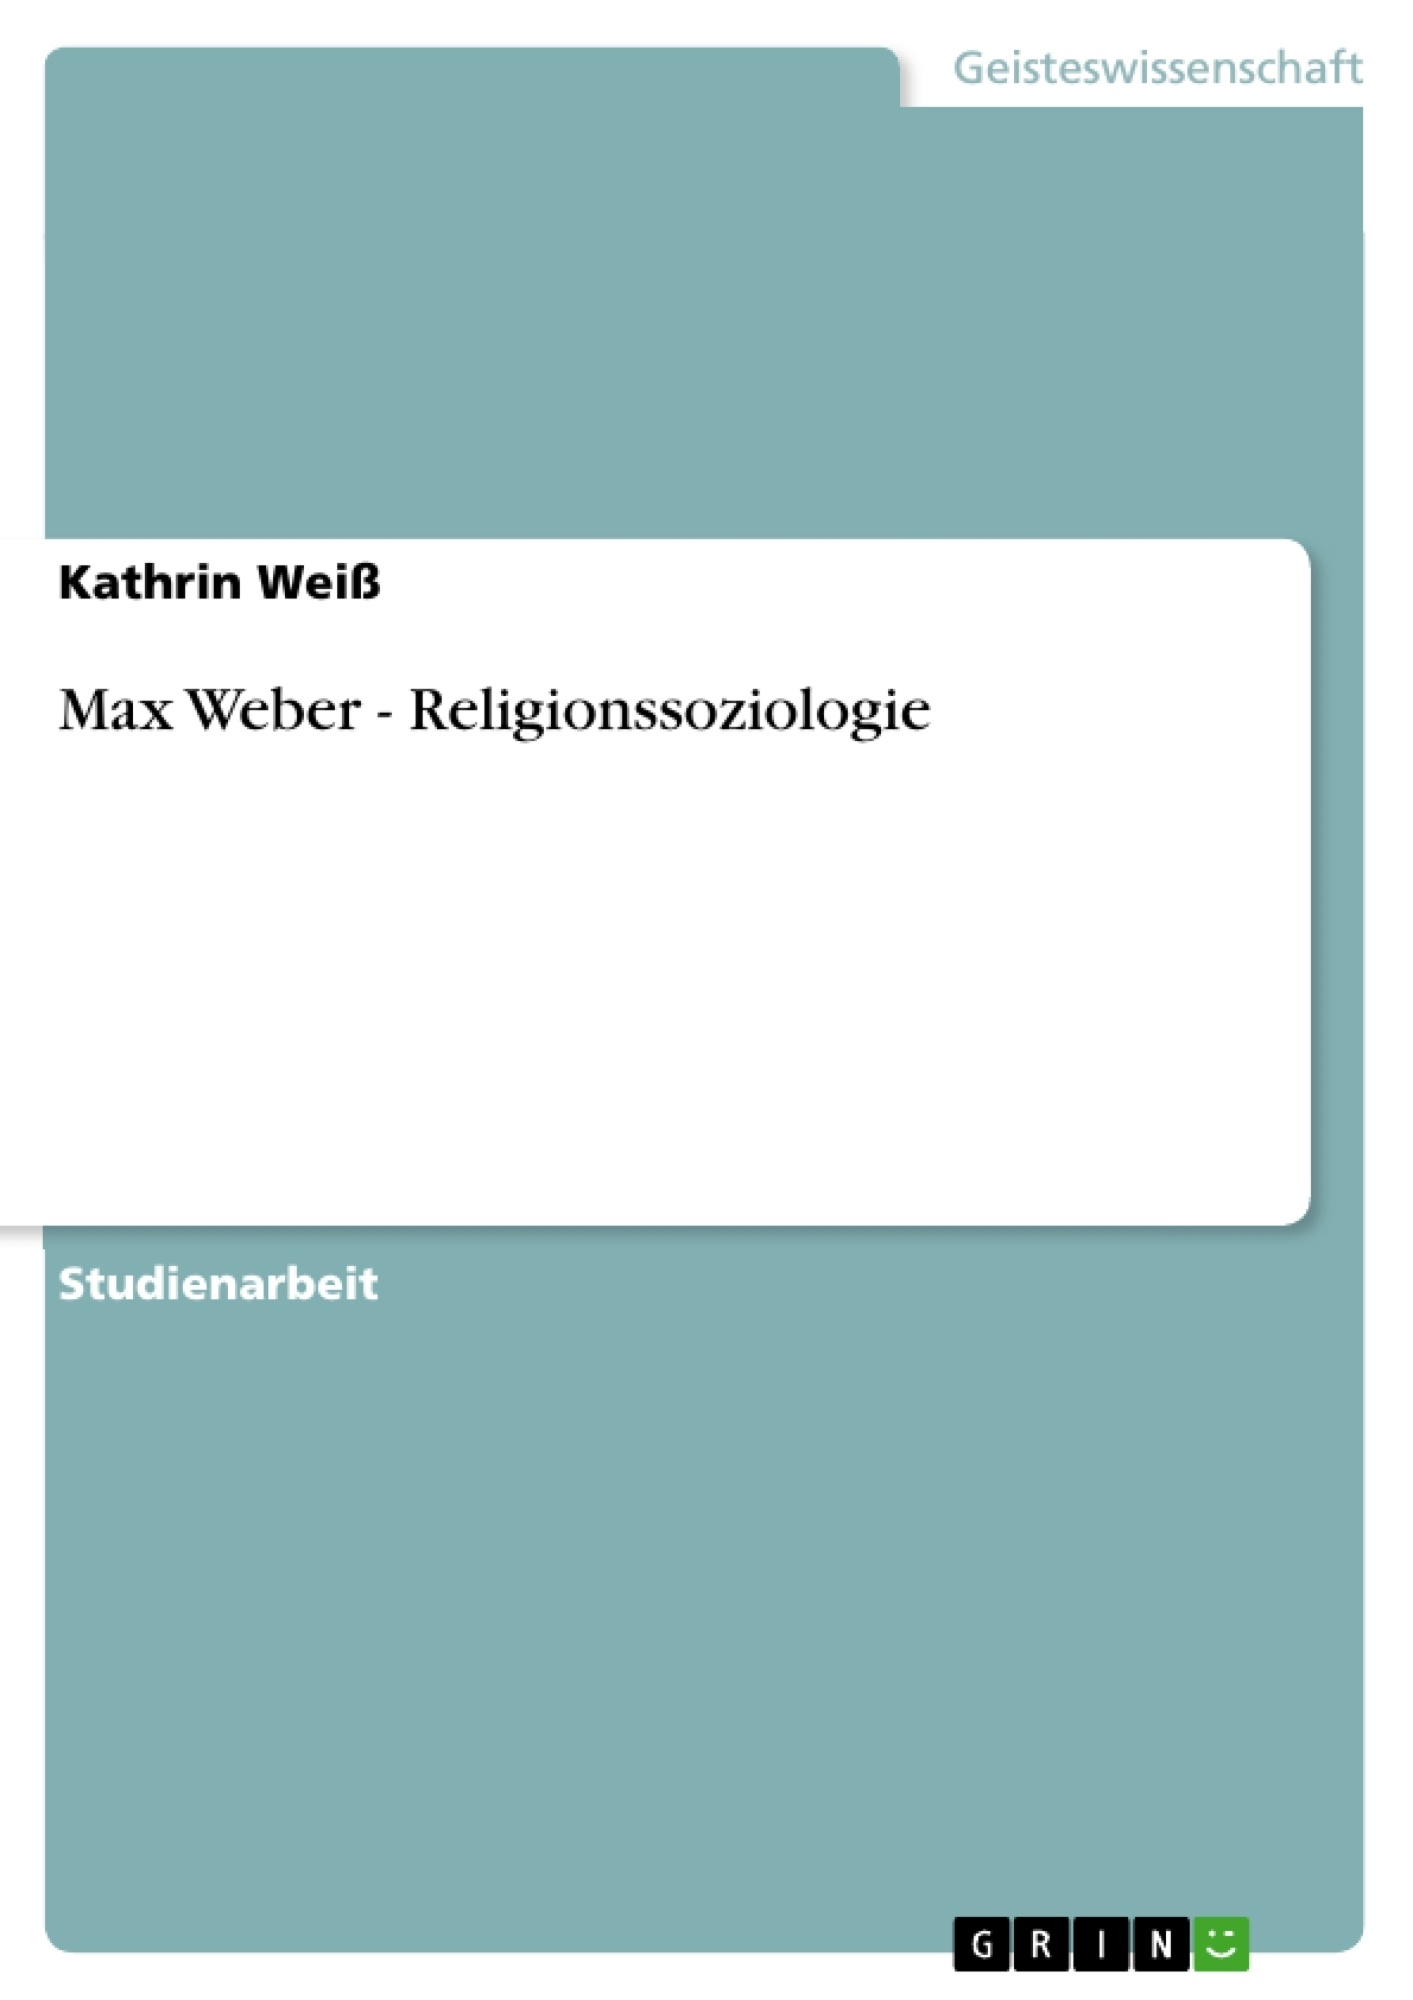 max weber and religion essay Introducing the student to the work of a great sociologist, this book opens with a comprehensive biographical essay on weber's life and work and includes his essays.